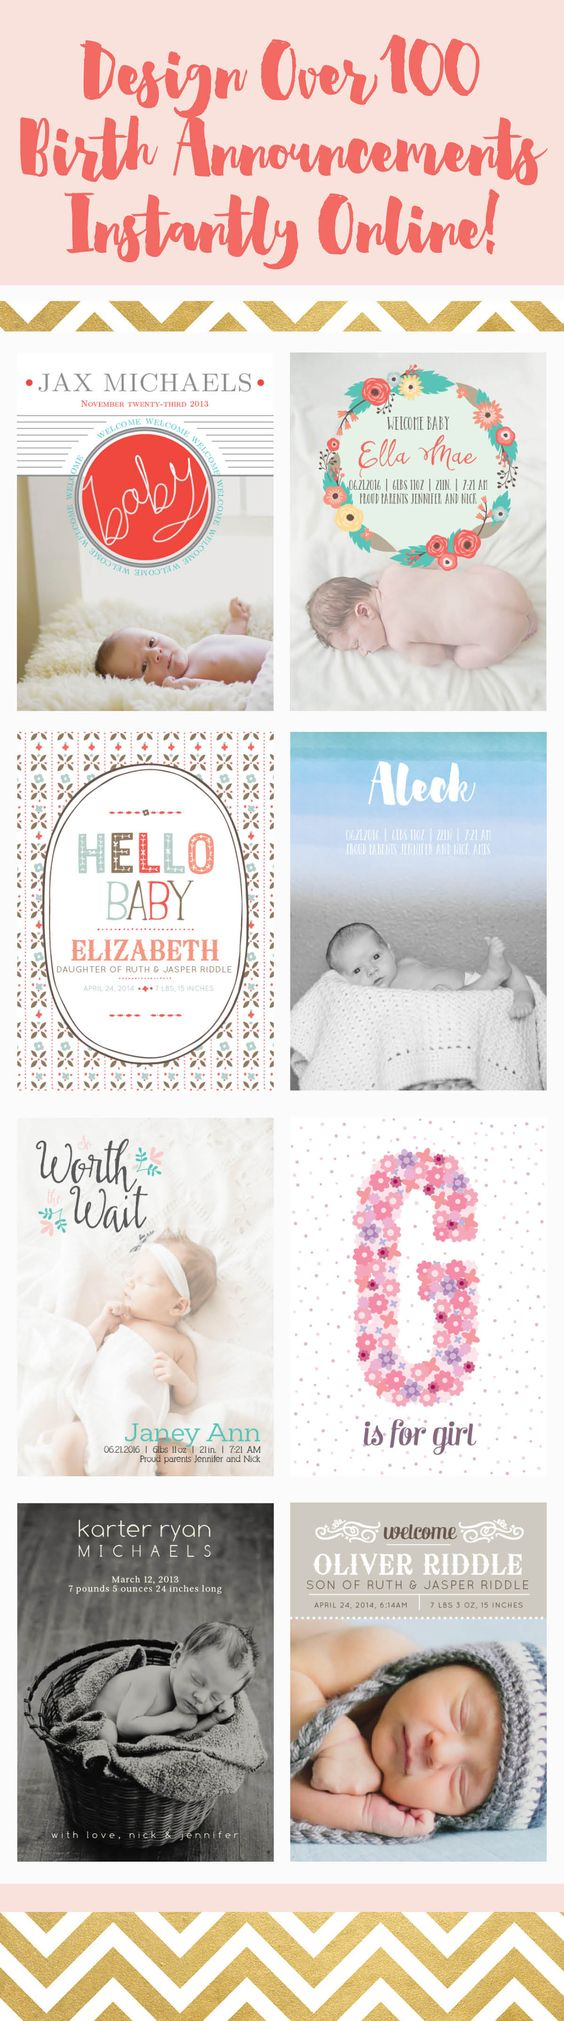 texts  births and baby announcement cards on pinterest